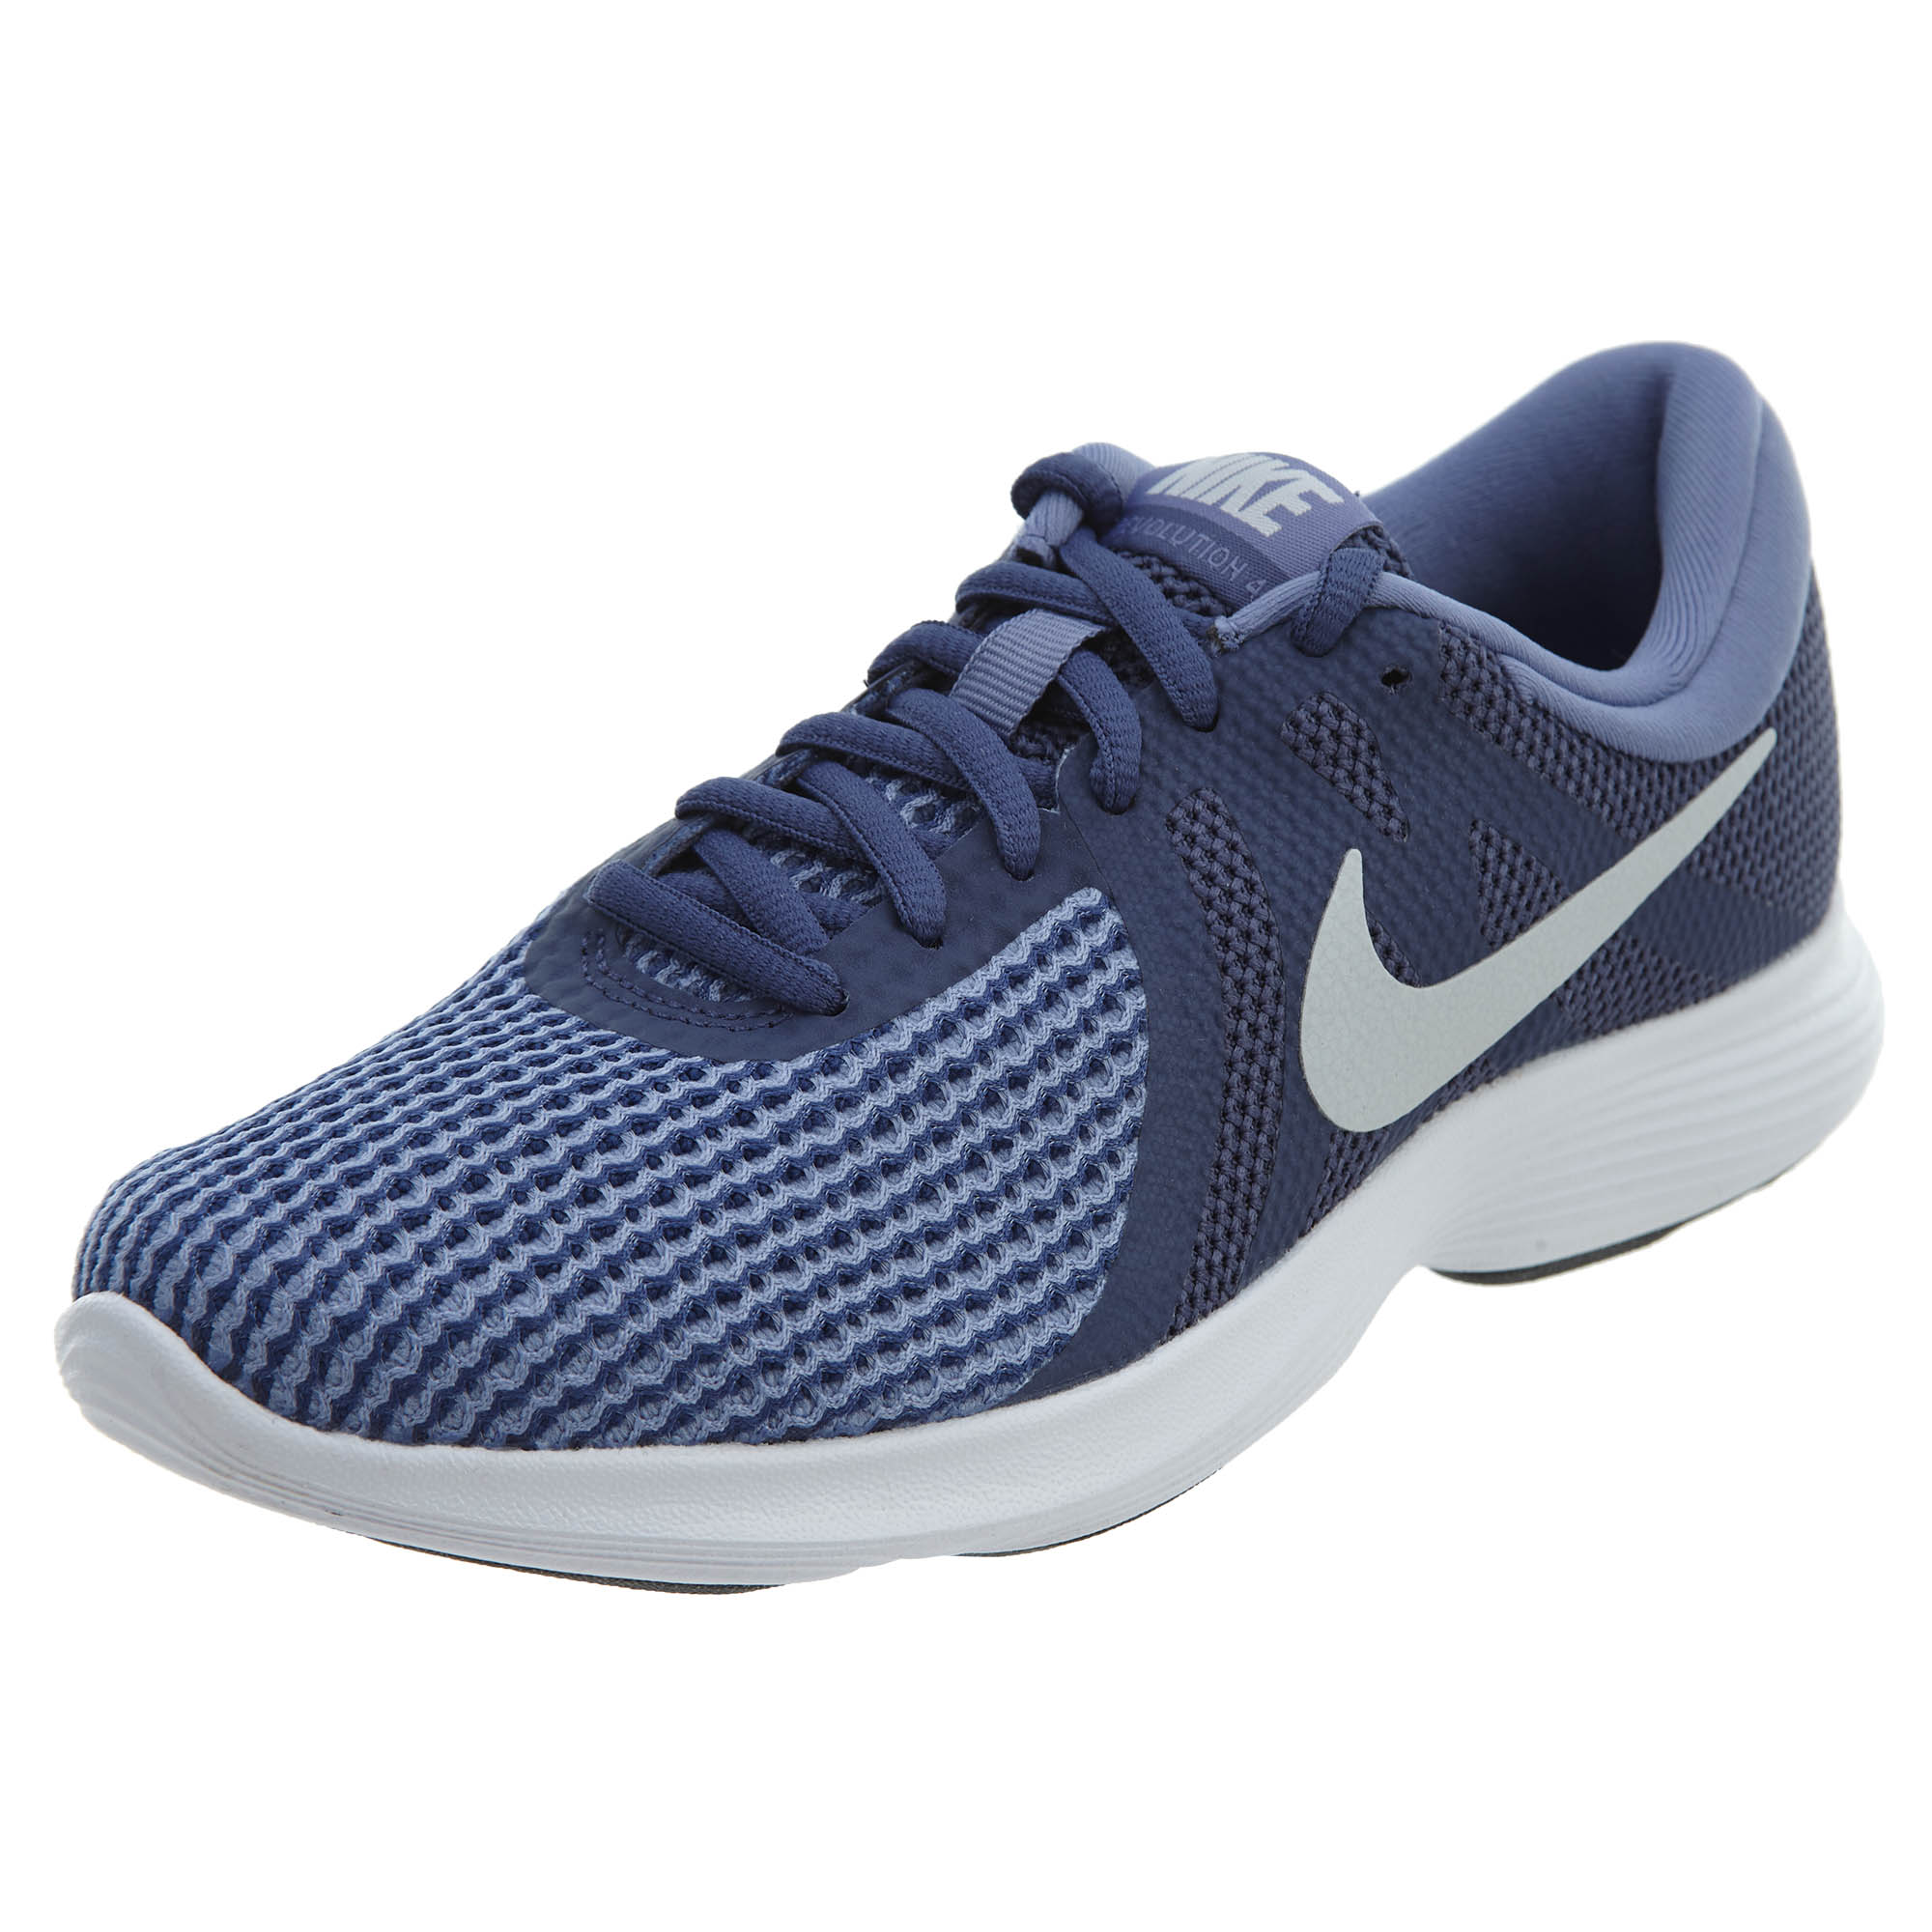 338f24456d2cf Details about Nike Womens Revolution 4 Running Shoes 908999-401